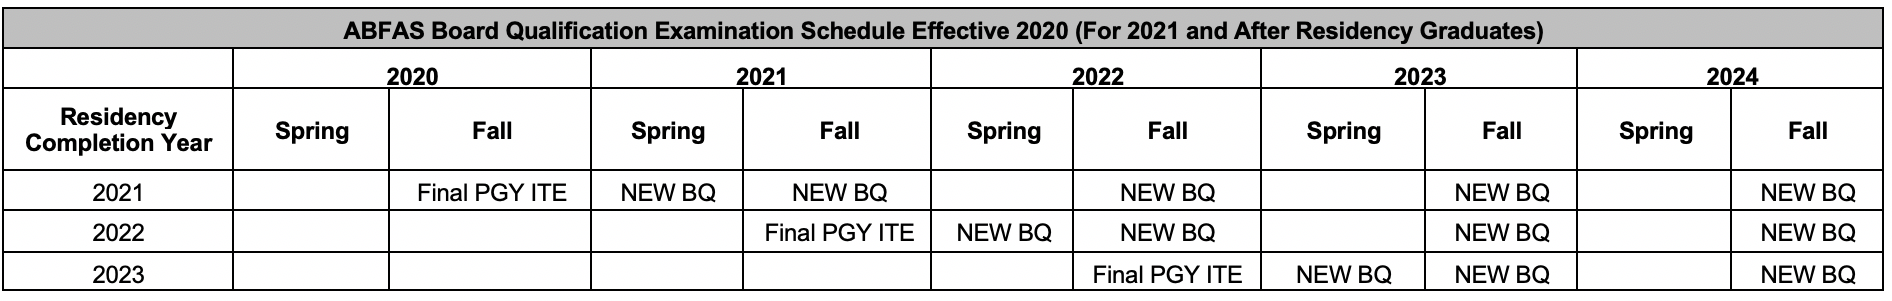 ABFAS Board Qualification Examination Schedule Effective 2020 (For 2021 and After Residency Graduates)